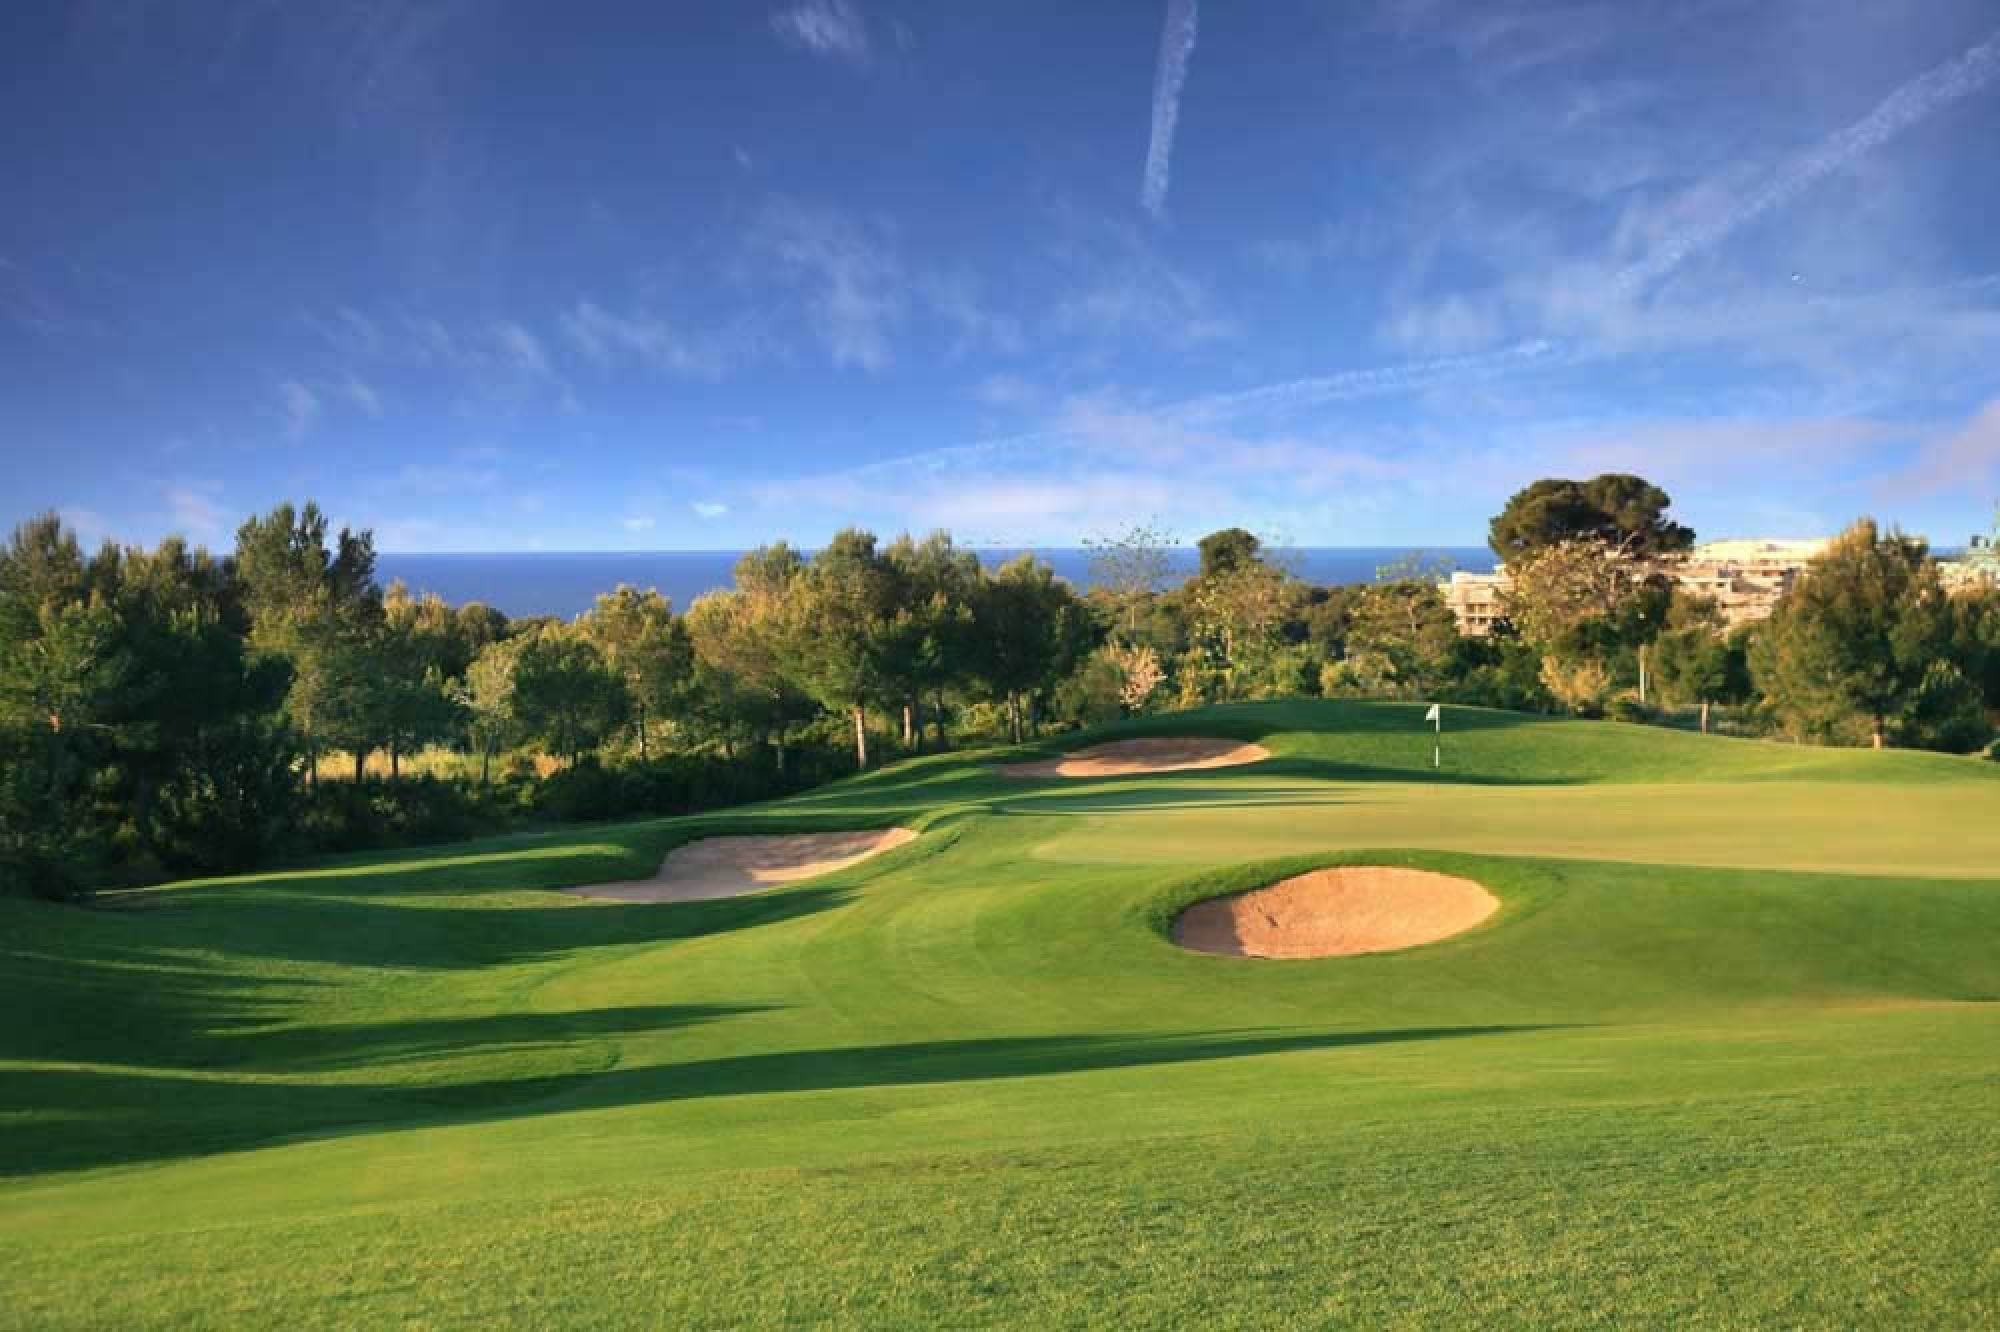 Lumine Hills carries several of the most excellent golf course in Costa Dorada